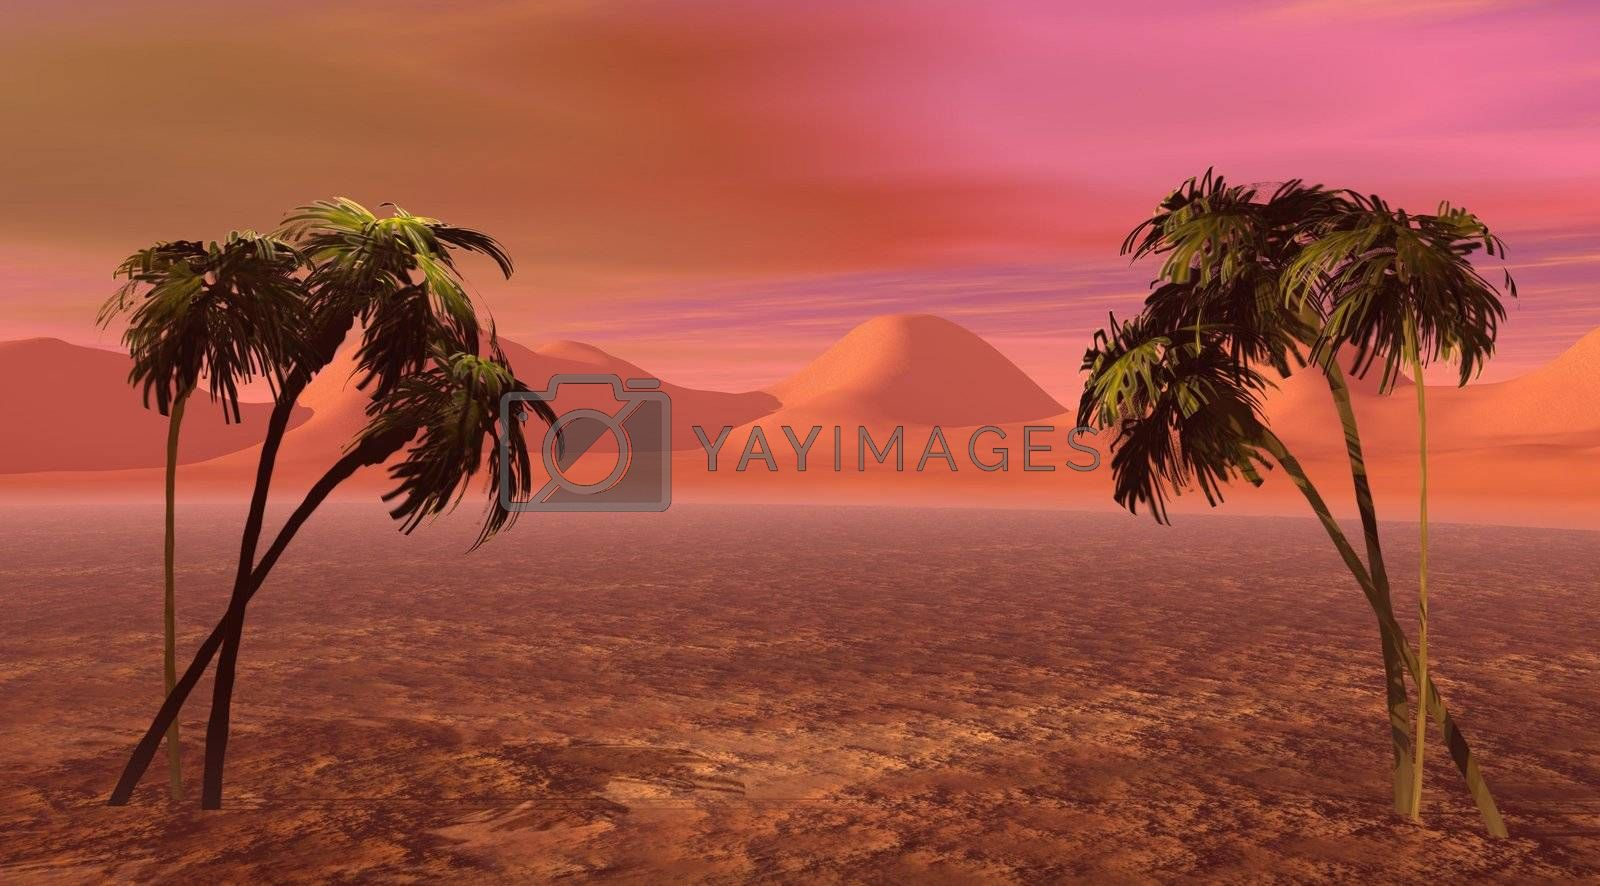 Royalty free image of island pink by mariephotos